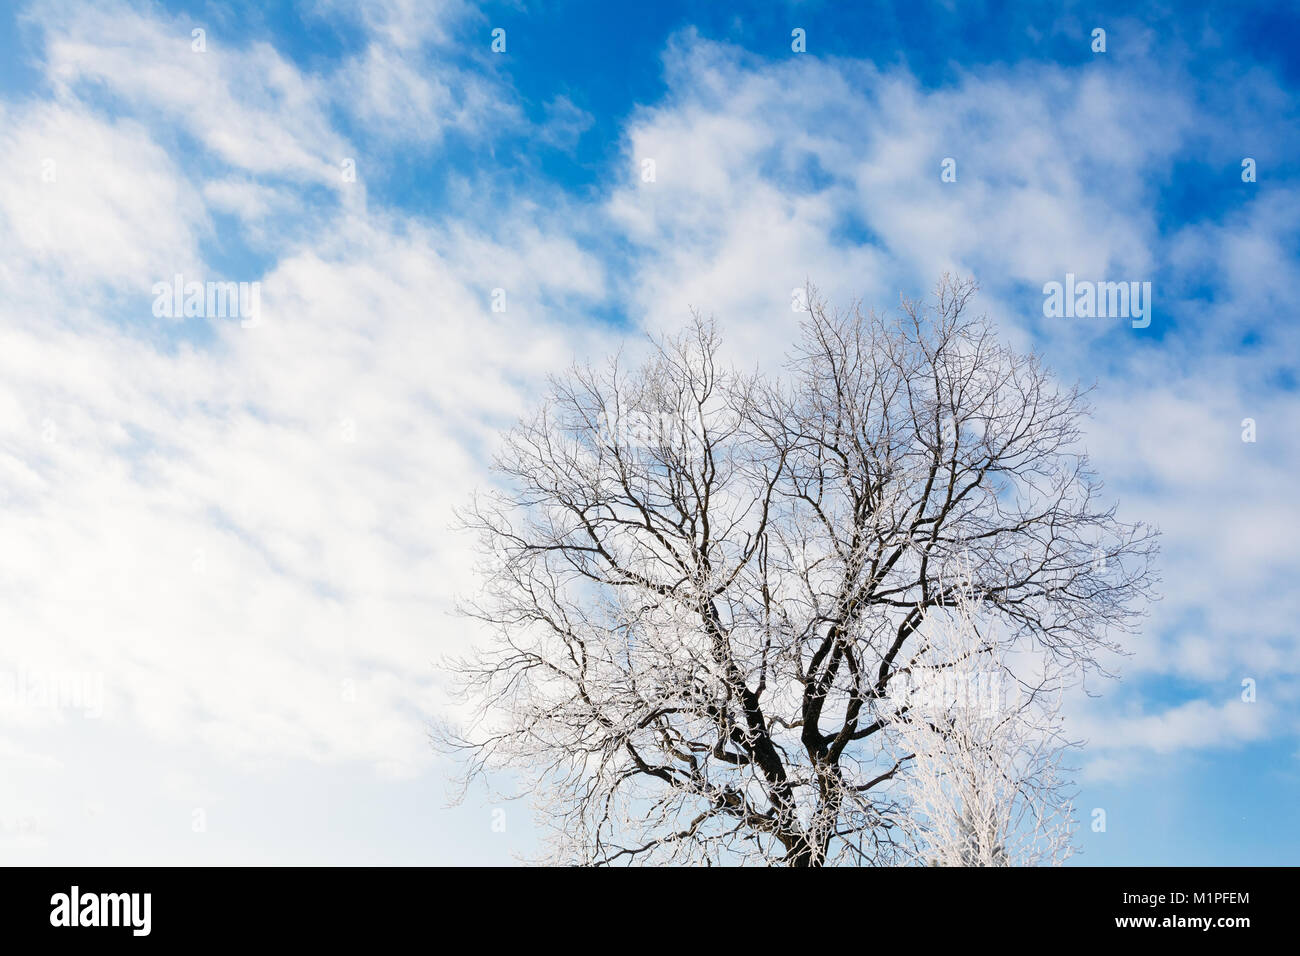 Oak tree without leaves in winter covered with frost against a blue sky with clouds Stock Photo